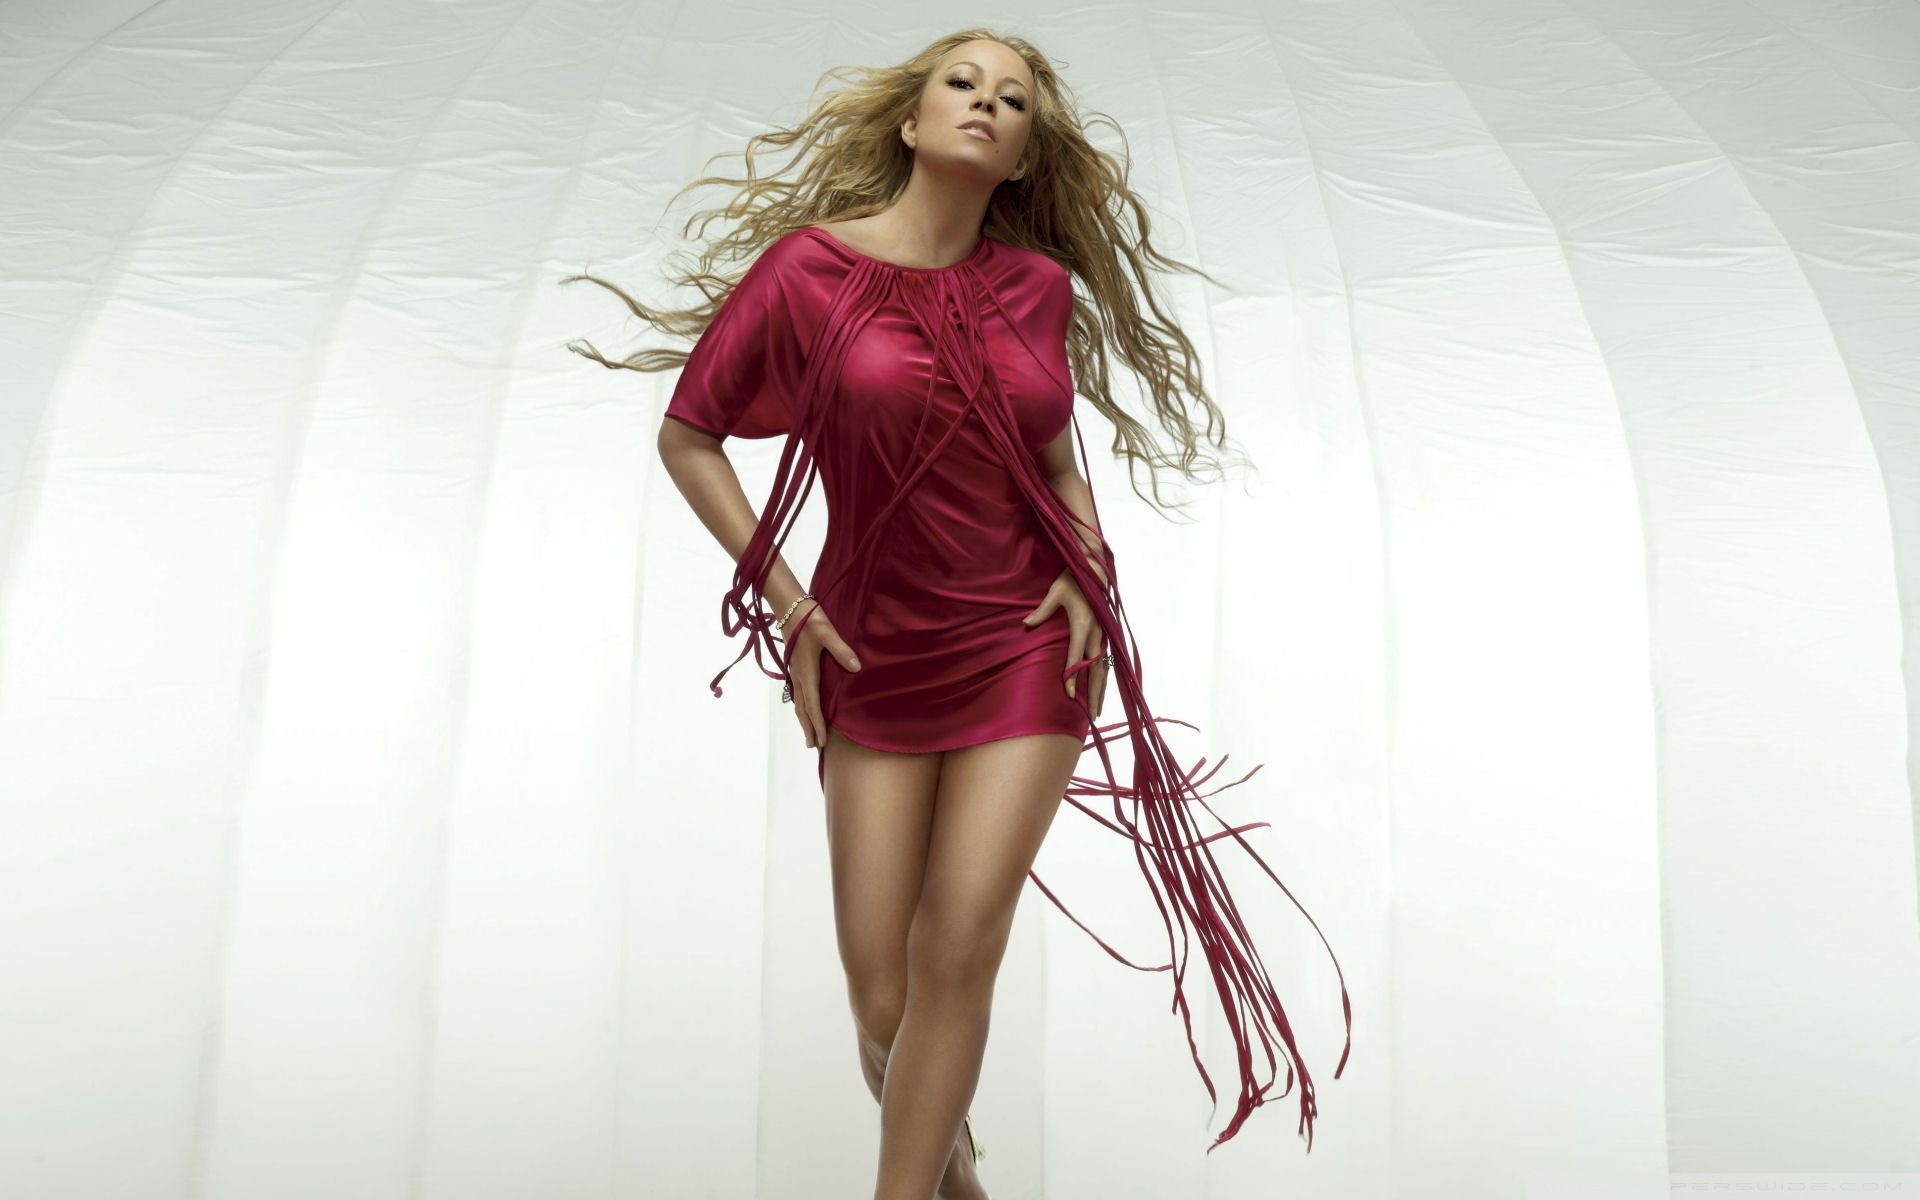 Mariah Carey Wallpapers Hd Backgrounds Mariah Carey Mariah Carey Photos Mariah Carey Pictures